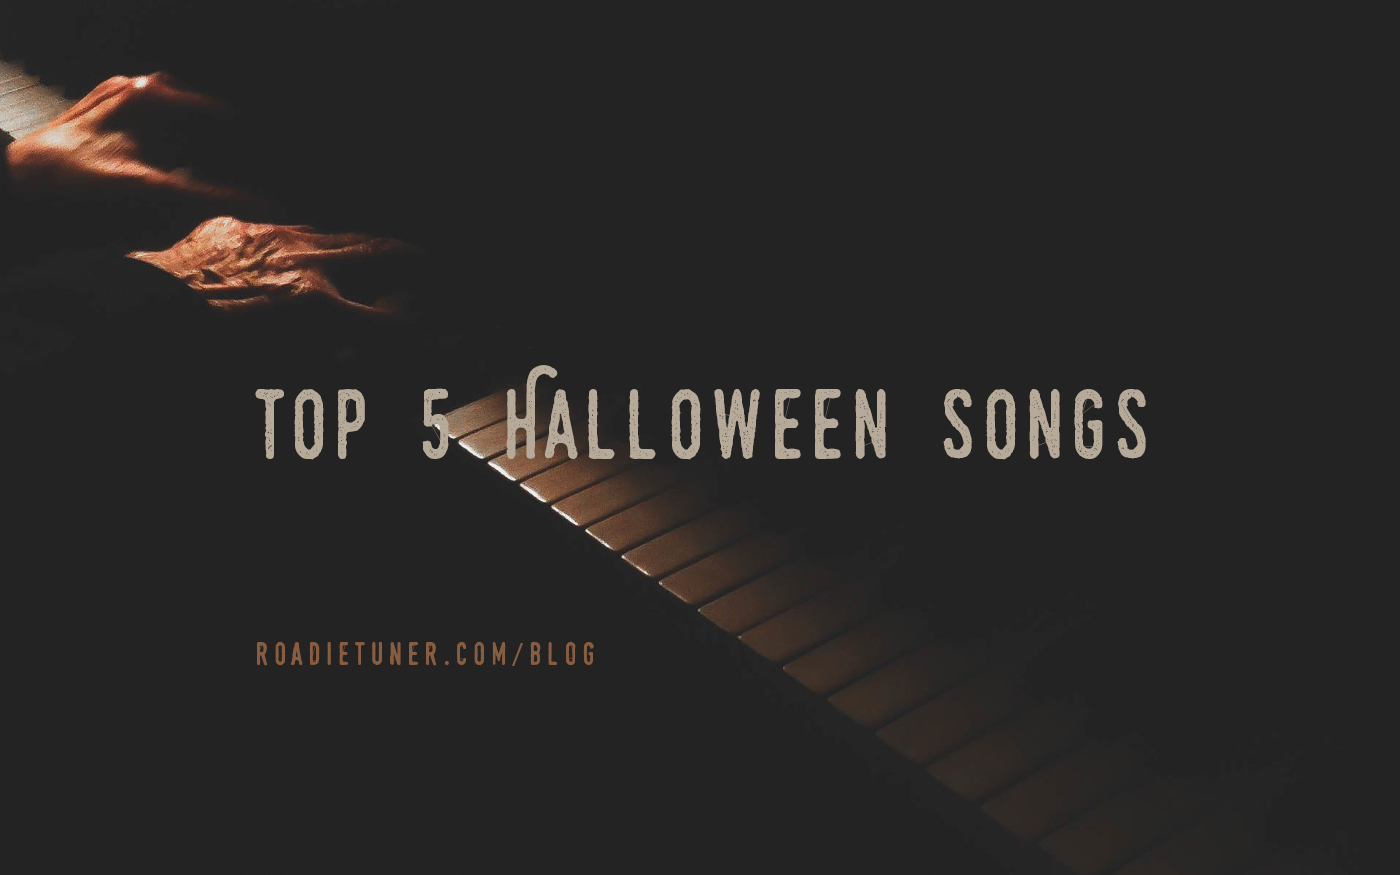 Get Spooky This Halloween With These 5 Songs